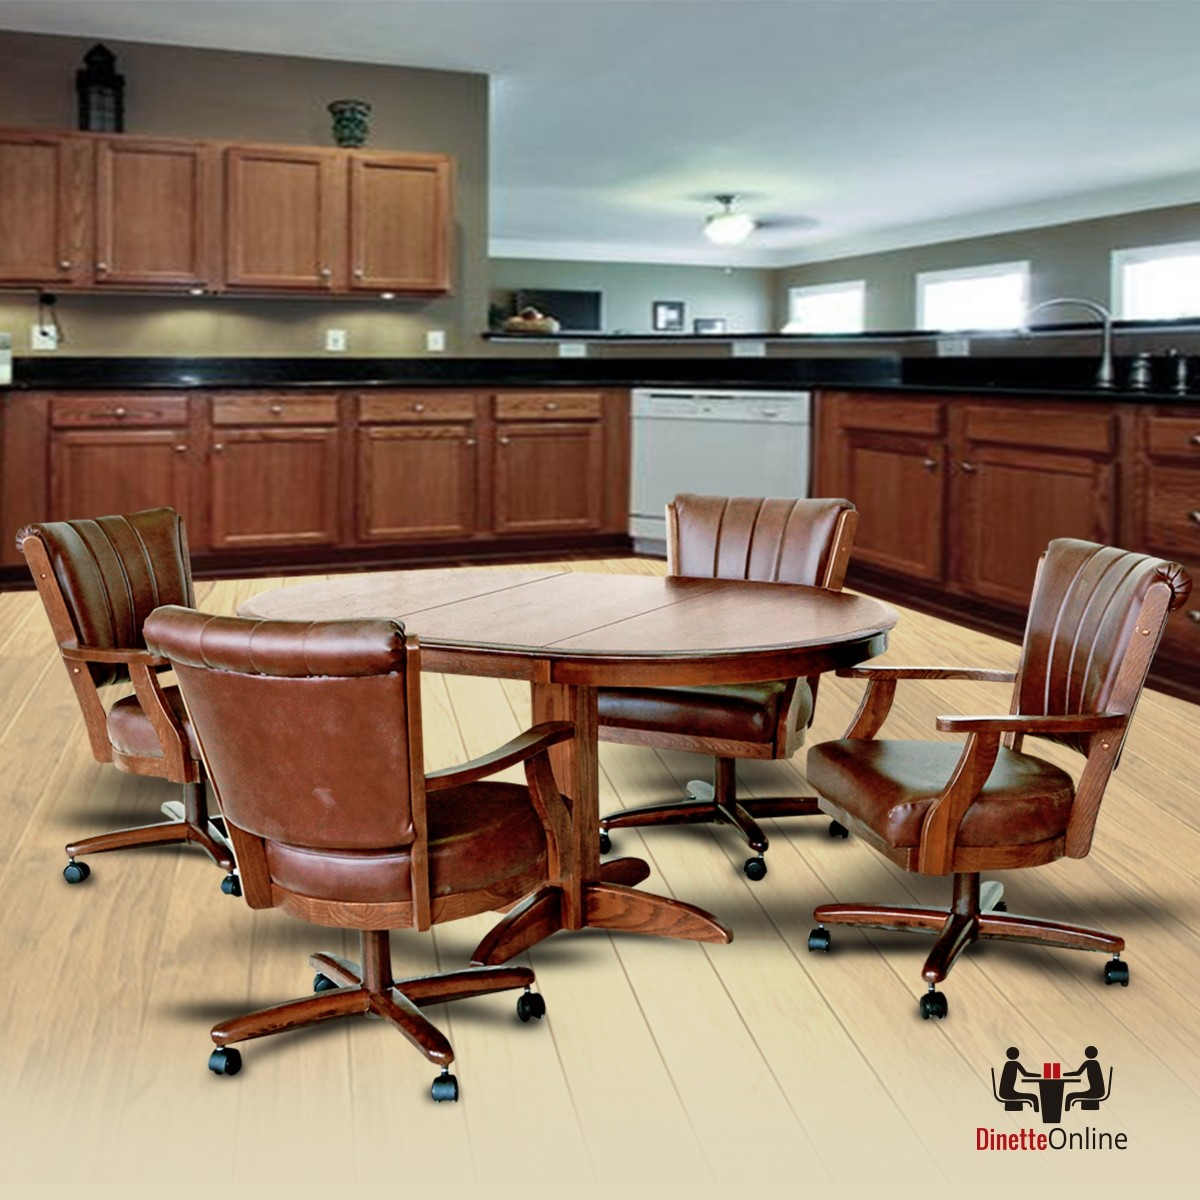 Chromcraft C178-855 And T250-607 Table Dinette Set